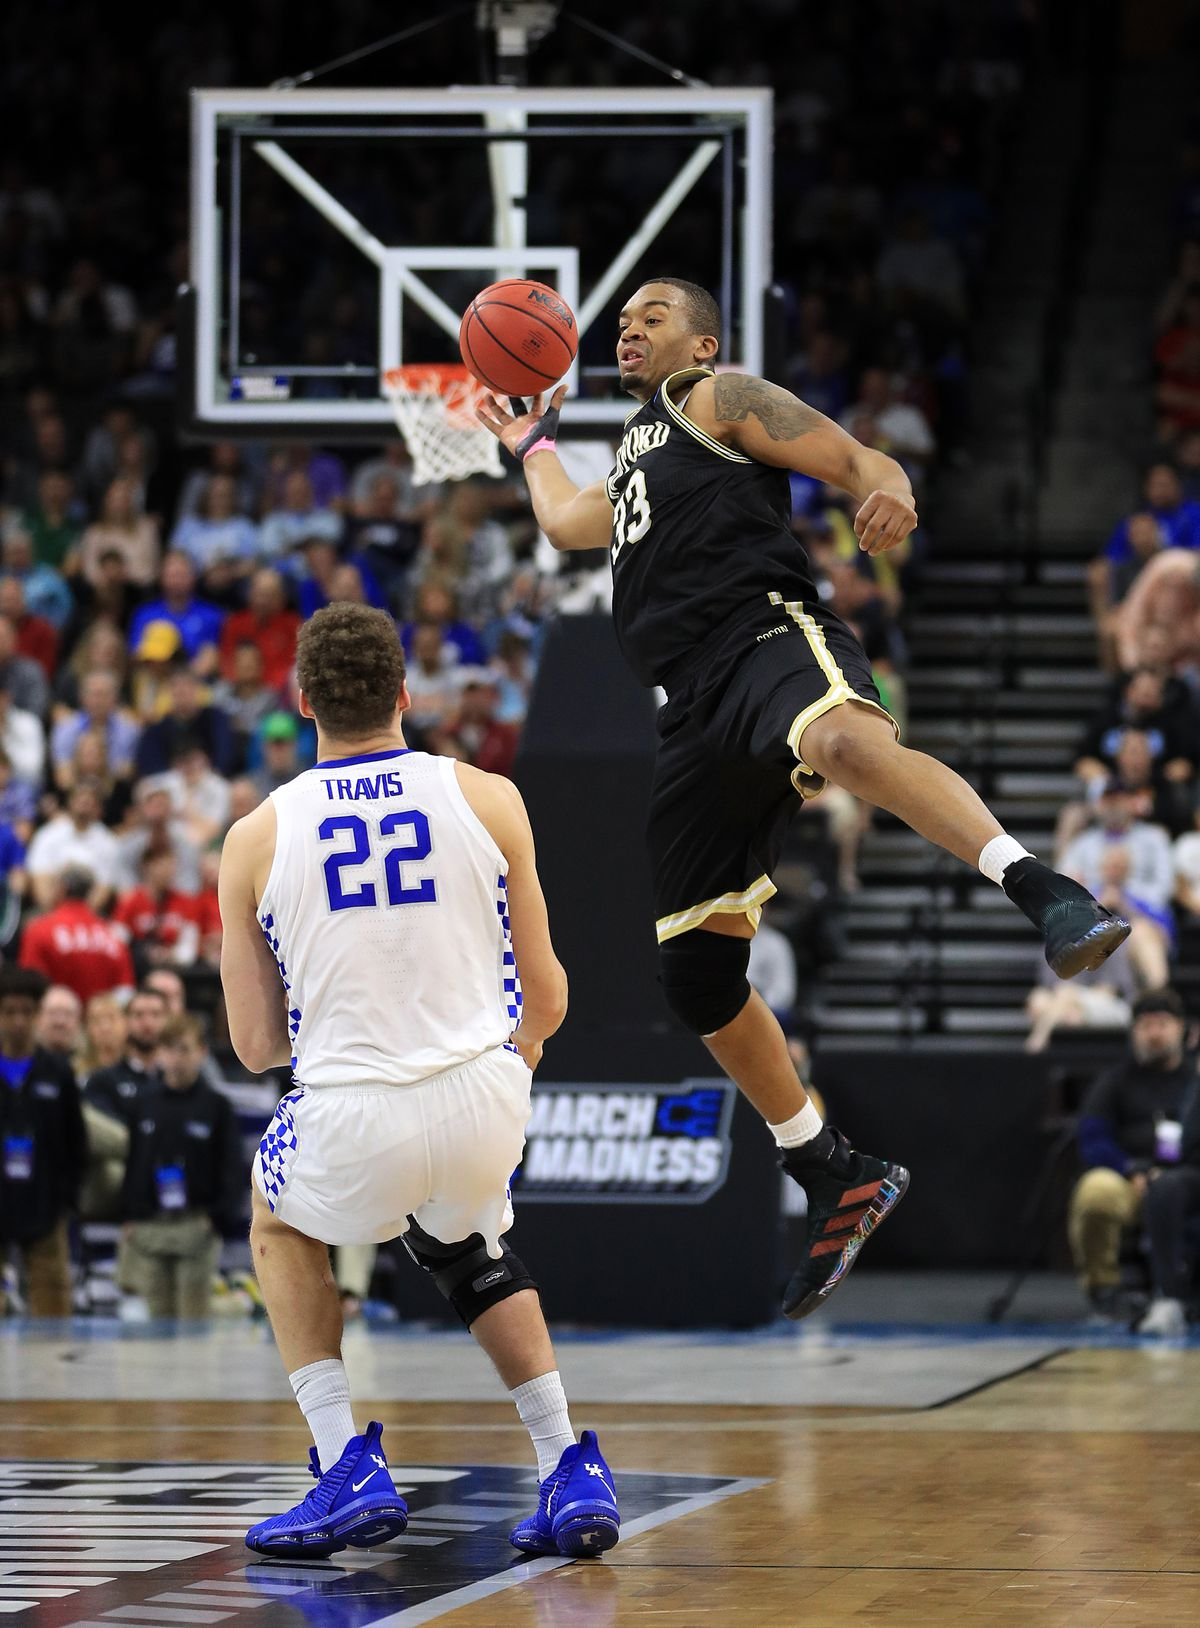 Wofford v Kentucky